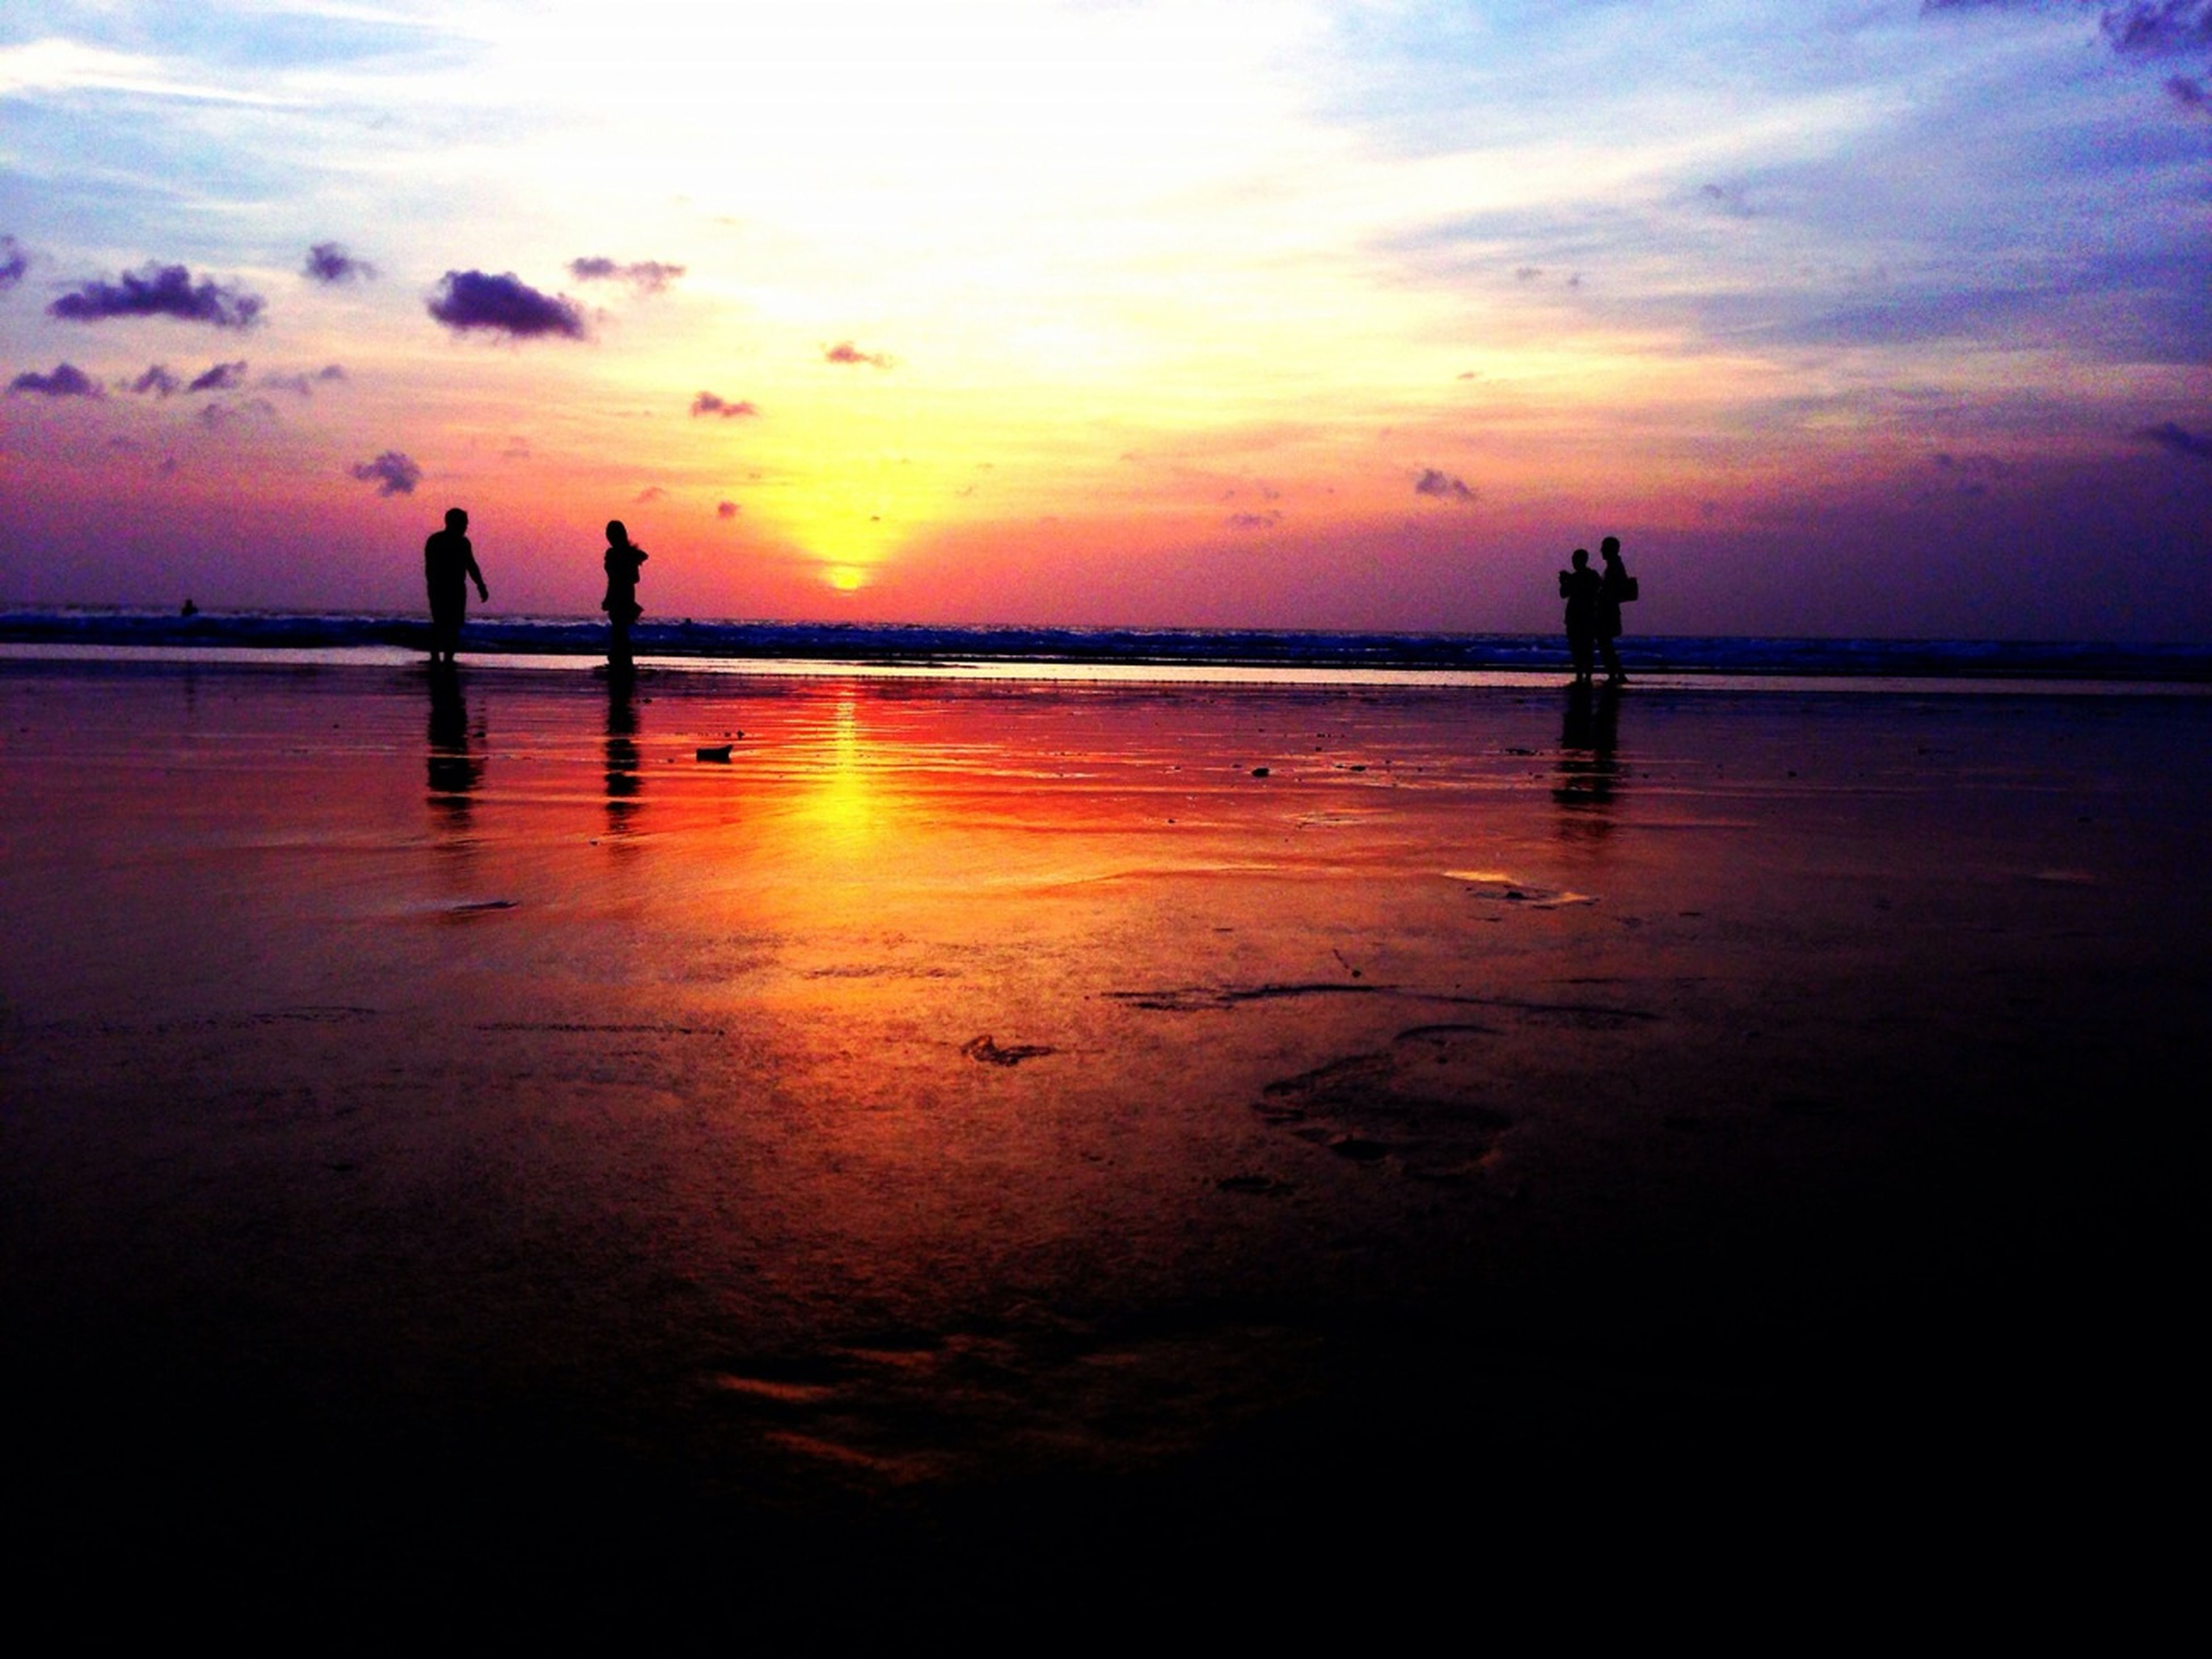 sunset, silhouette, beach, sea, water, horizon over water, shore, leisure activity, sky, lifestyles, scenics, orange color, men, beauty in nature, tranquil scene, tranquility, reflection, togetherness